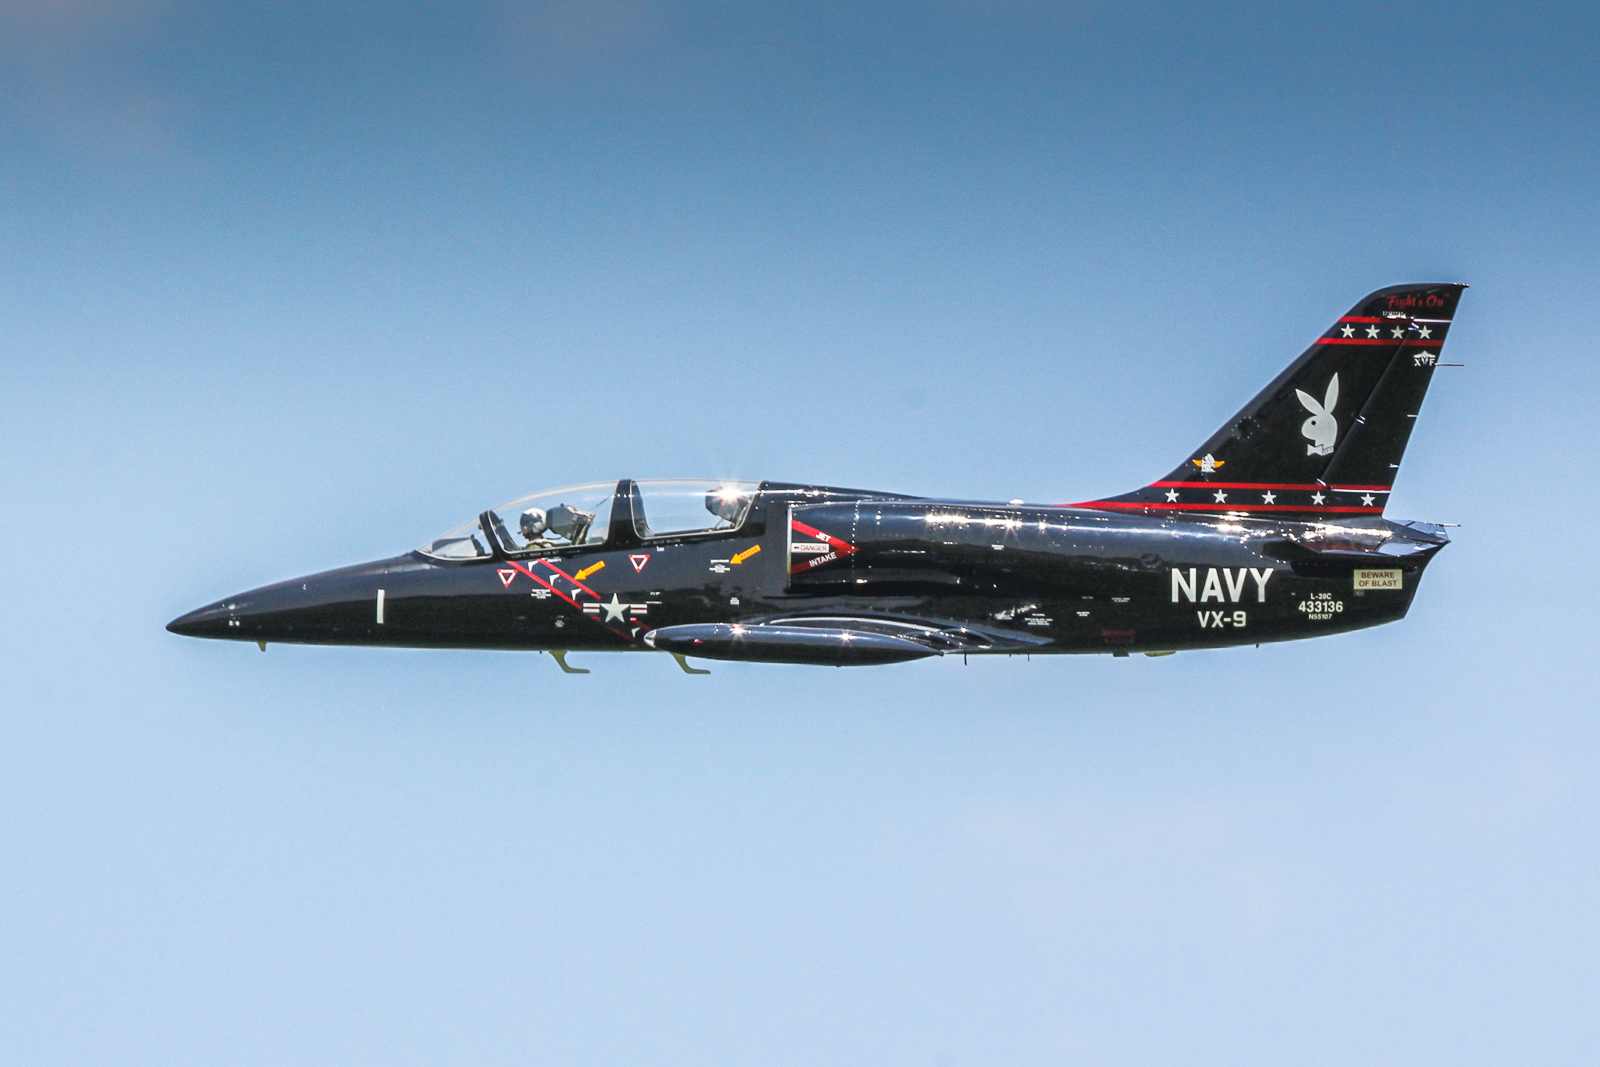 Mark 'Crunchy' Burgess in his L-39C Albatross. (photo by Tom Pawlesh)